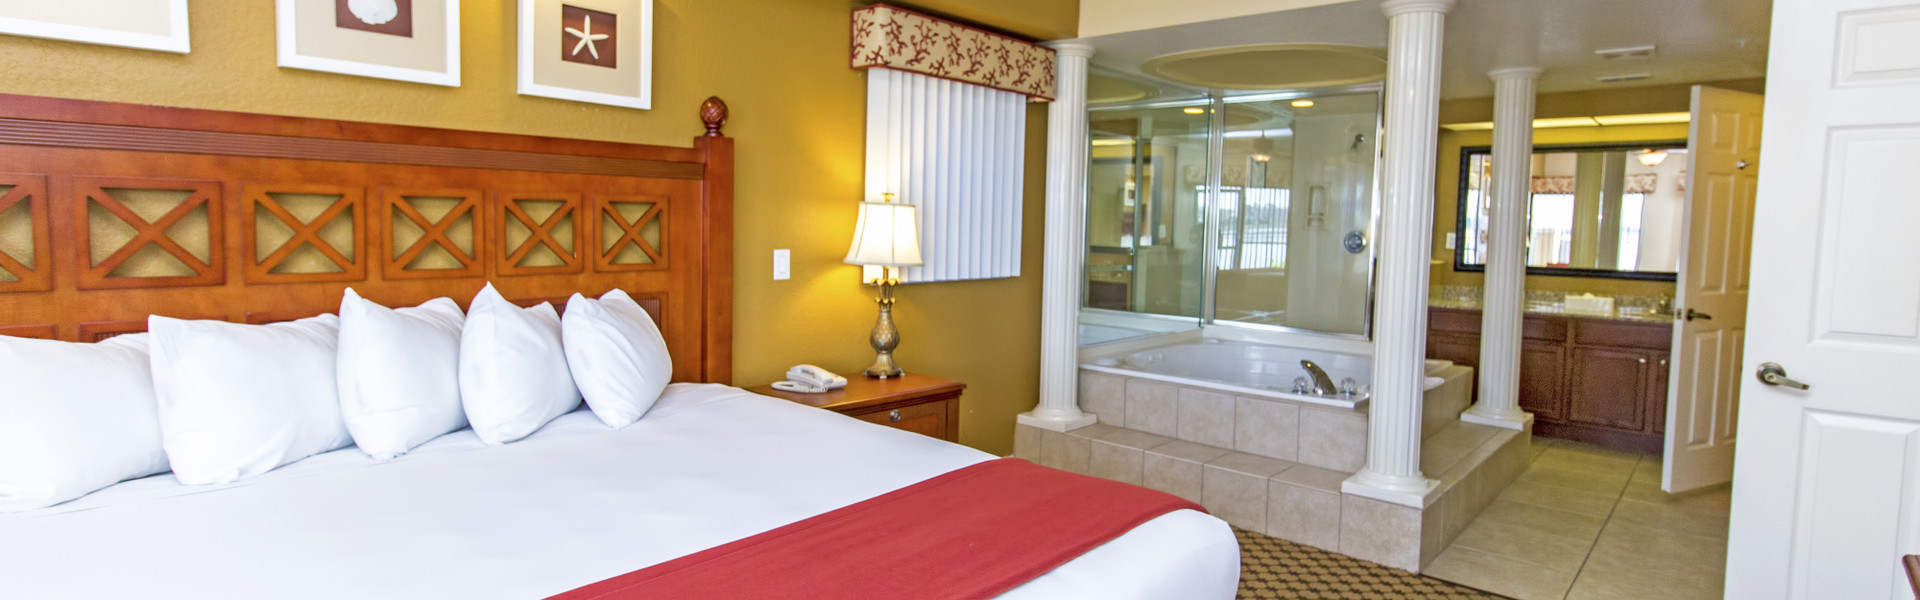 Room Featured in our virtual tour of our Orlando Resorts   Virtual Tour of Westgate Lakes Resort & Spa